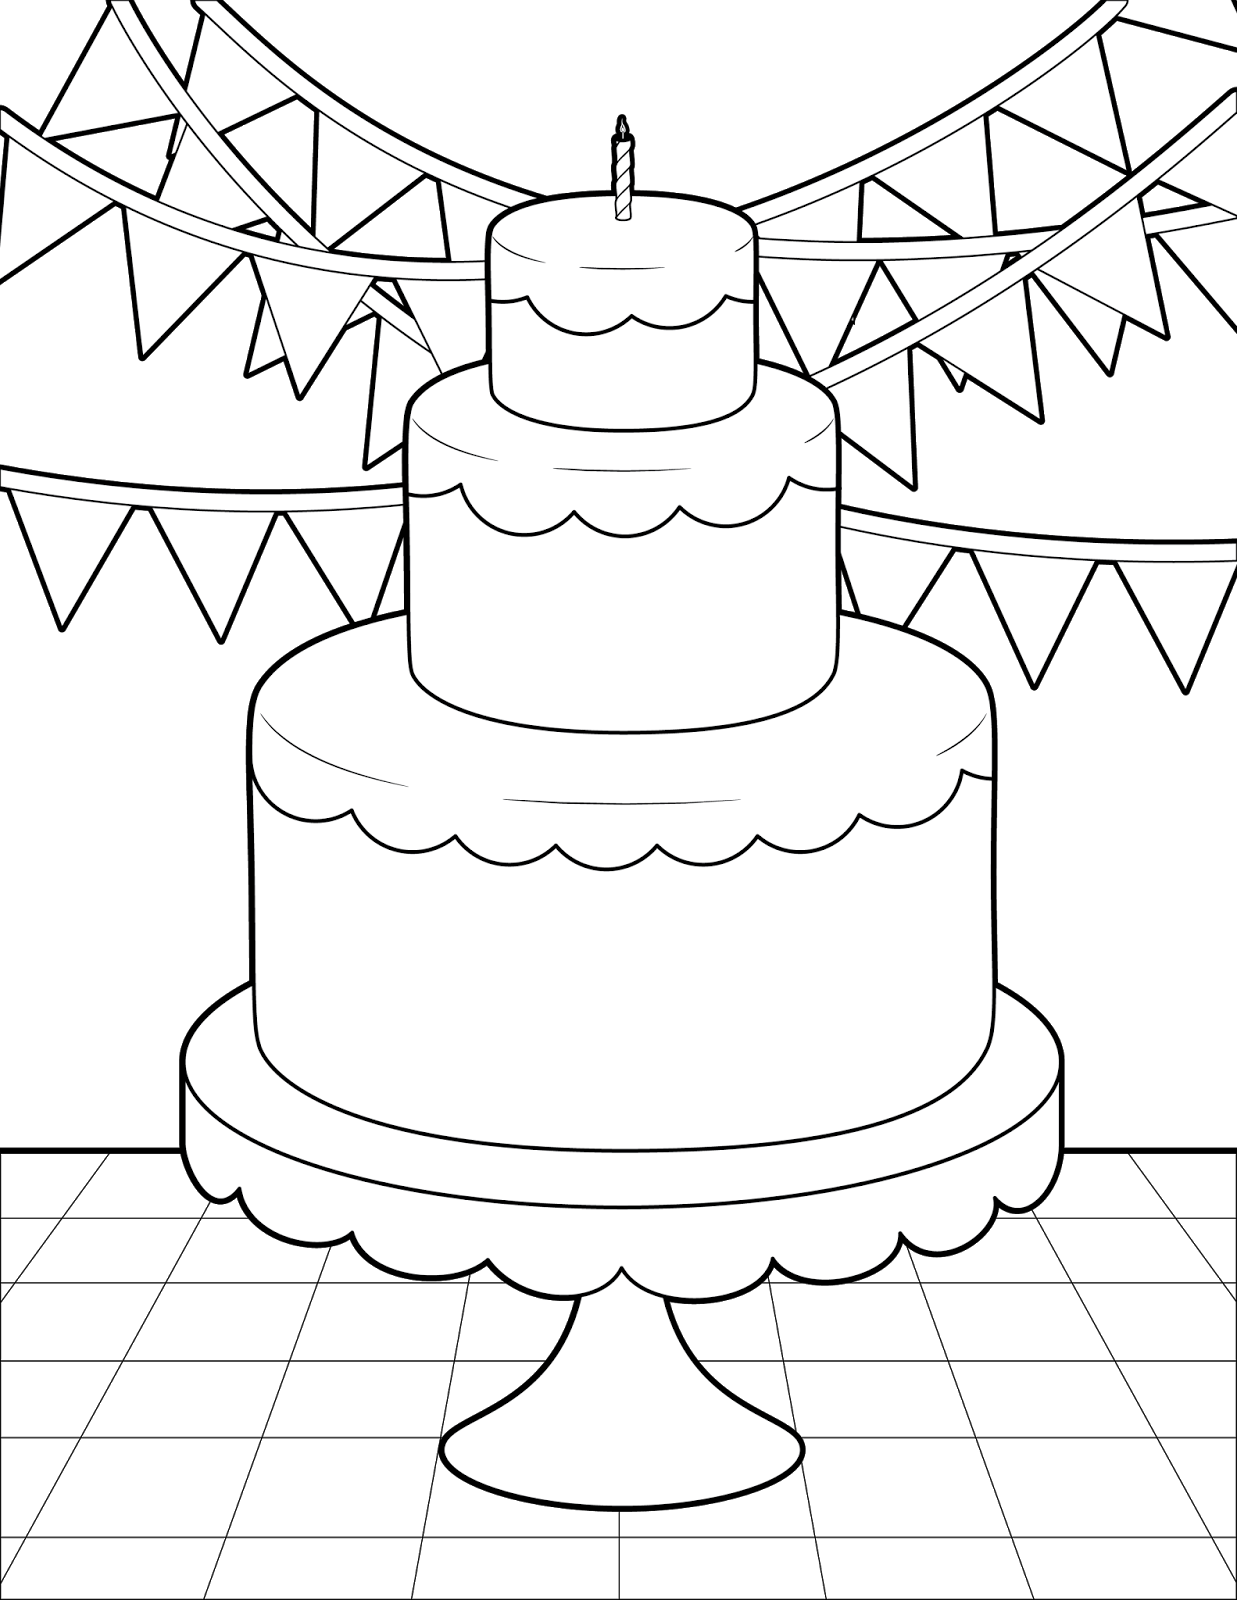 birthday cake to color cake coloring pages at getdrawings free download to cake birthday color